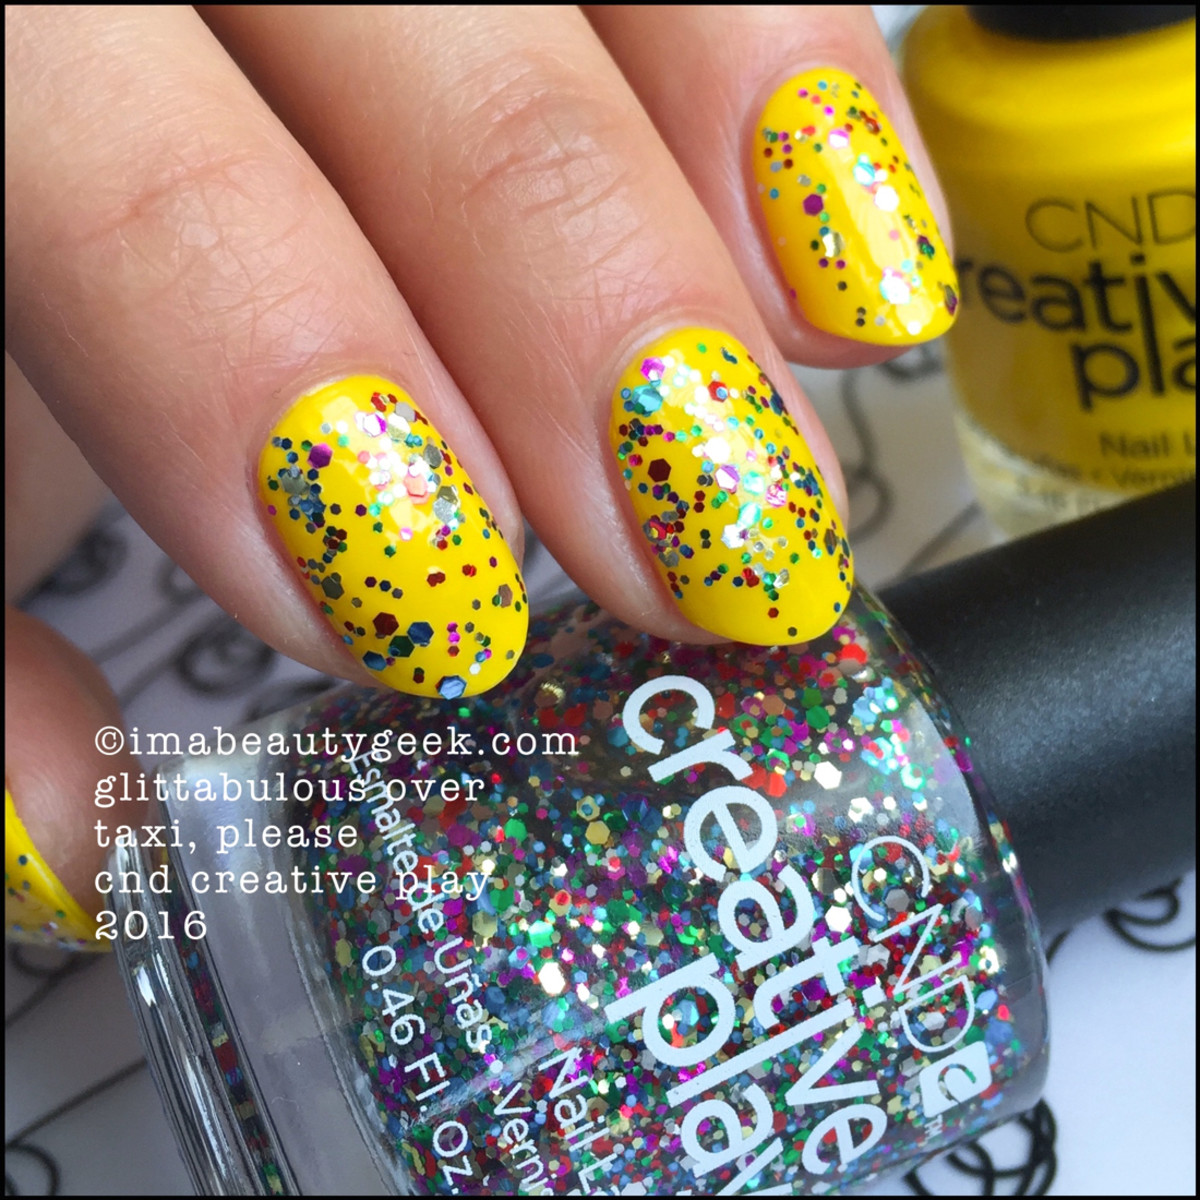 CND Creative Play Glittabulous over Taxi Please_CND Creative Play Nail Polish Swatches